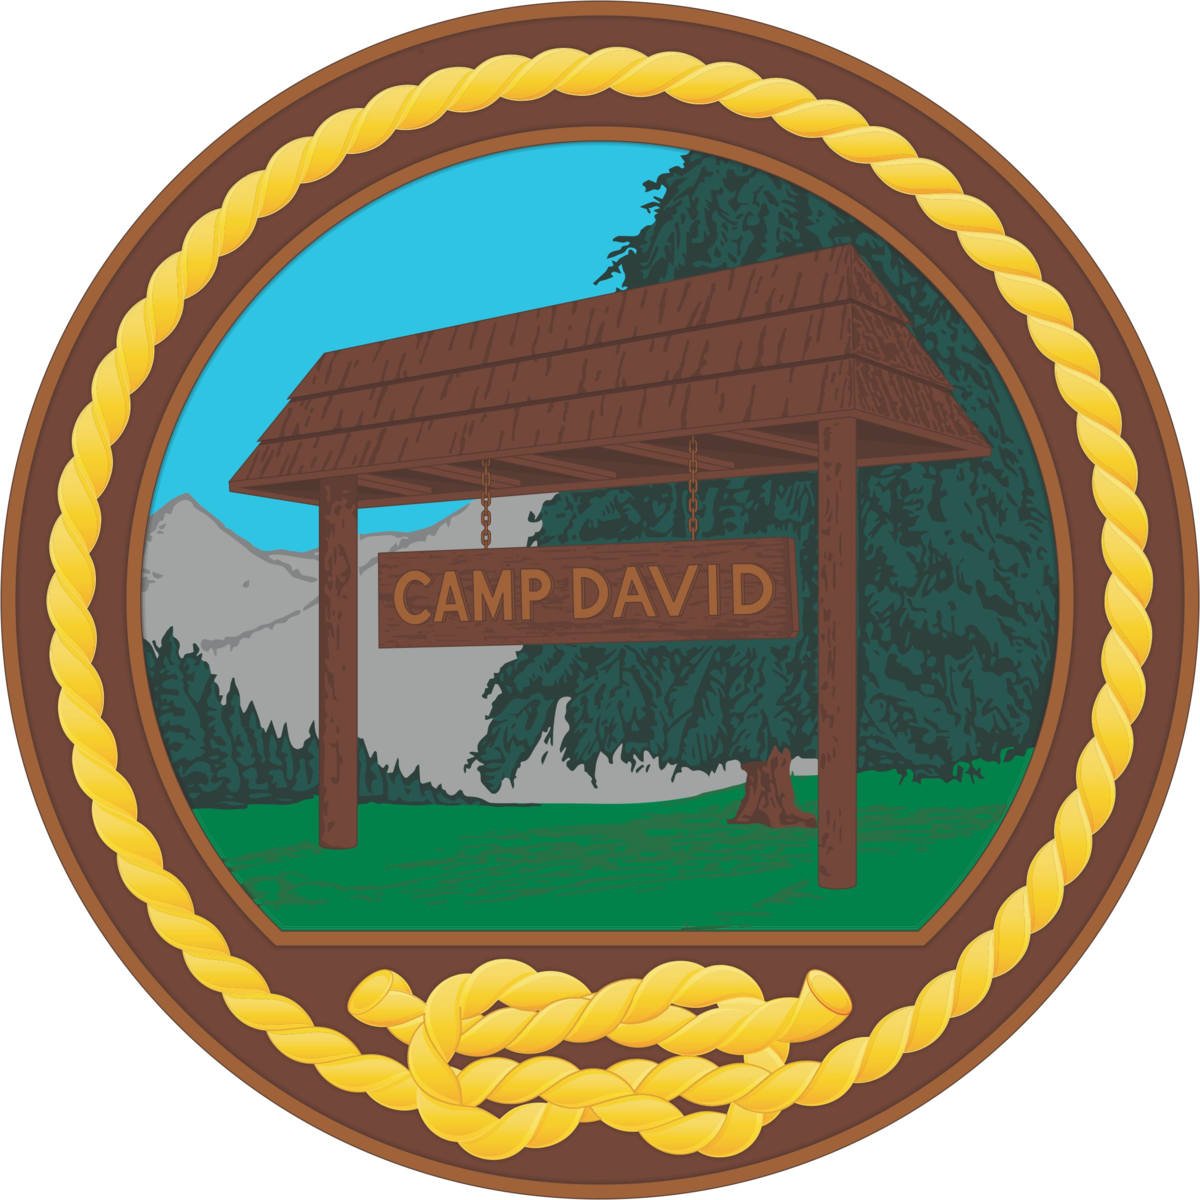 camp david wikipedia. Black Bedroom Furniture Sets. Home Design Ideas